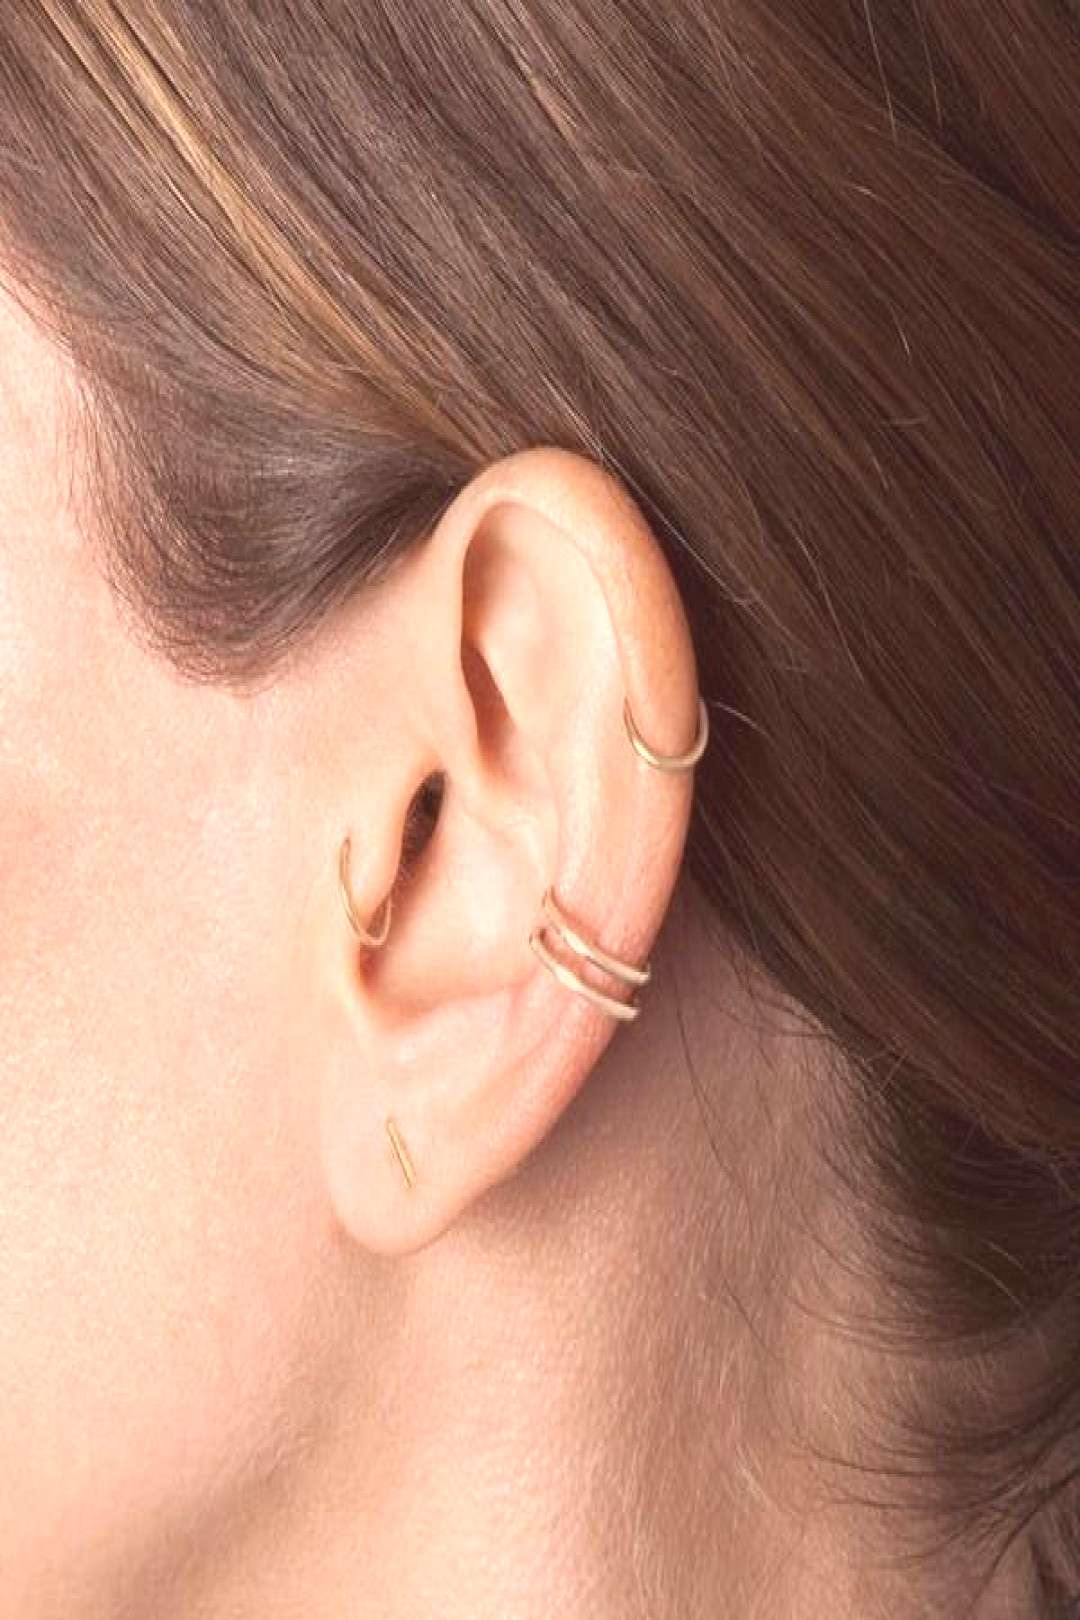 10 unique and beautiful ear piercing ideas, from minimalist studs to extravagant jewels - We've